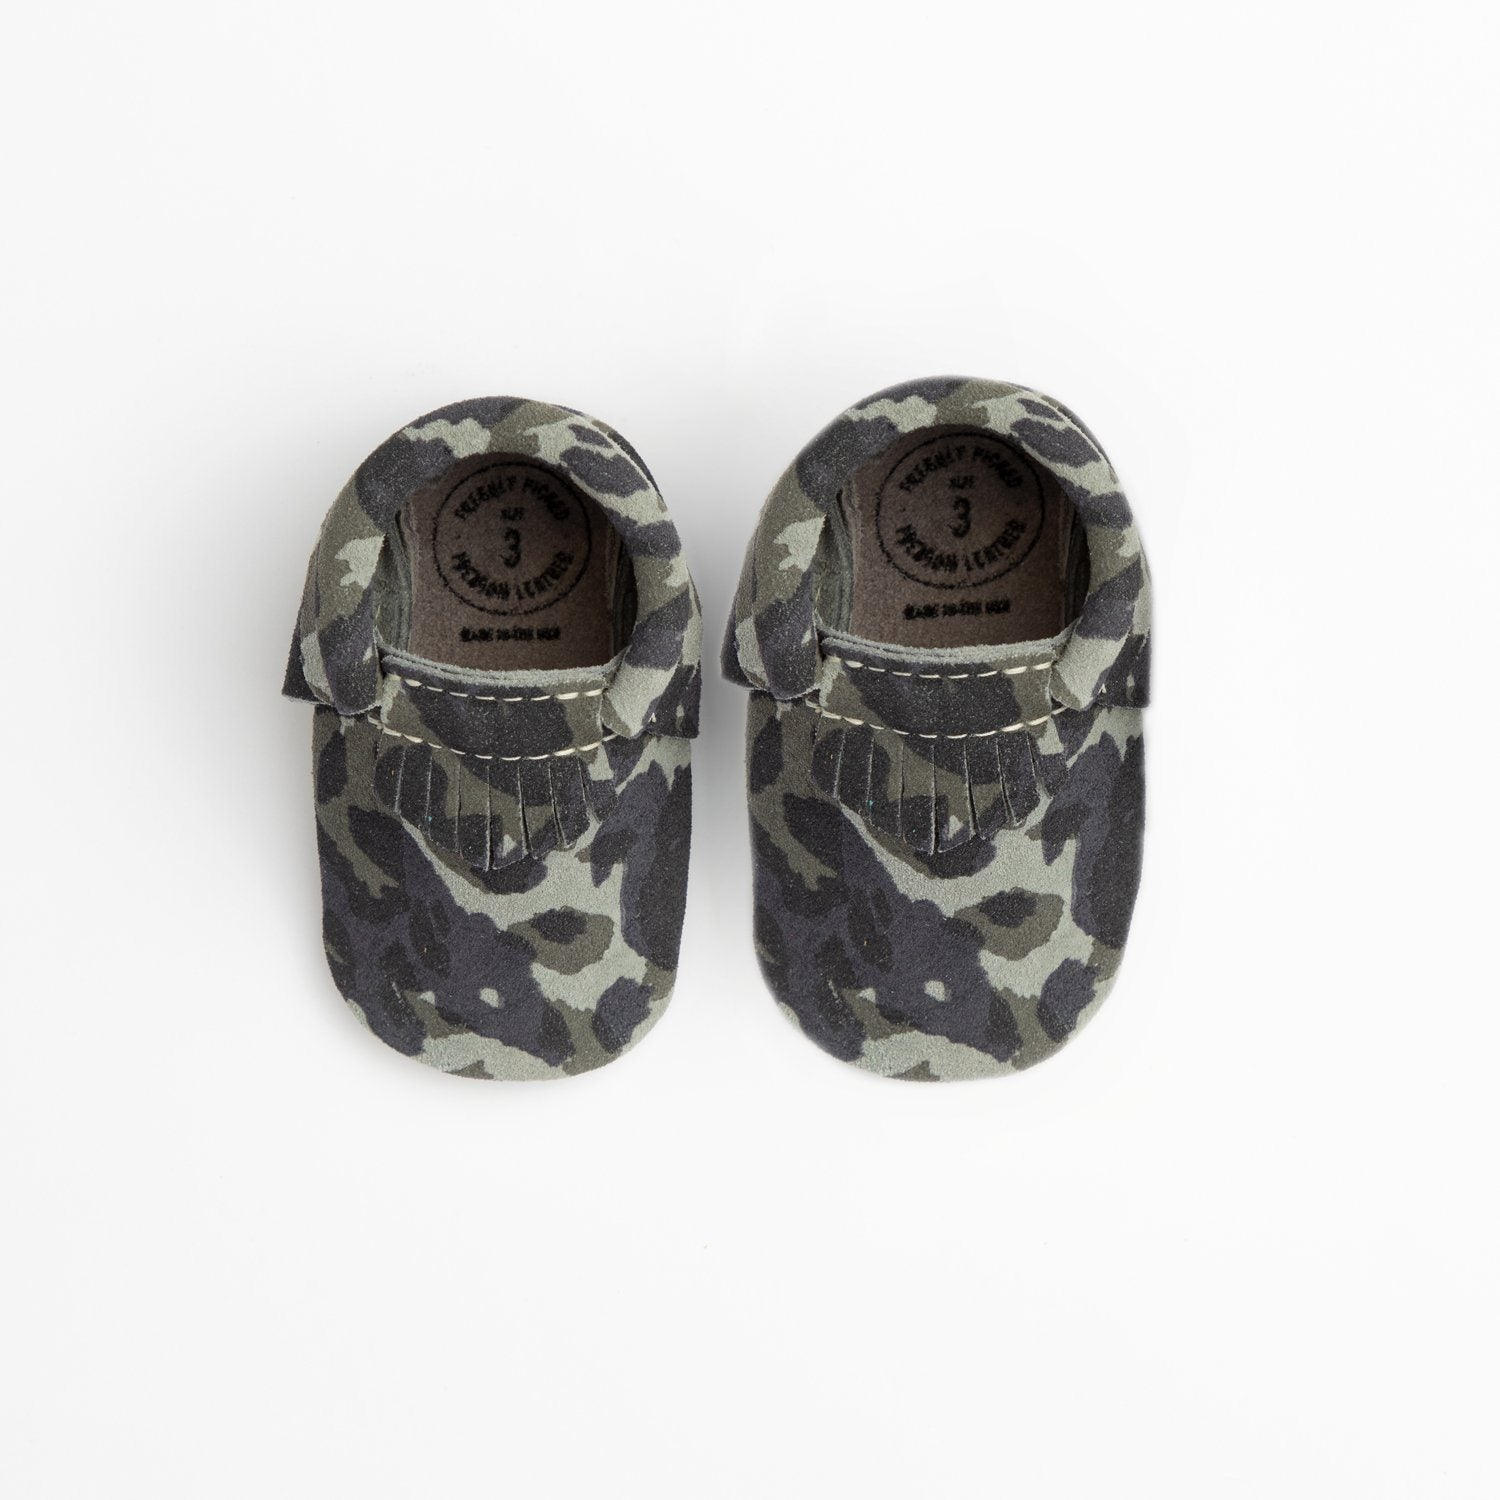 Blue Suede Camo City Mocc Mini Sole Mini Sole City Mocc Mini soles